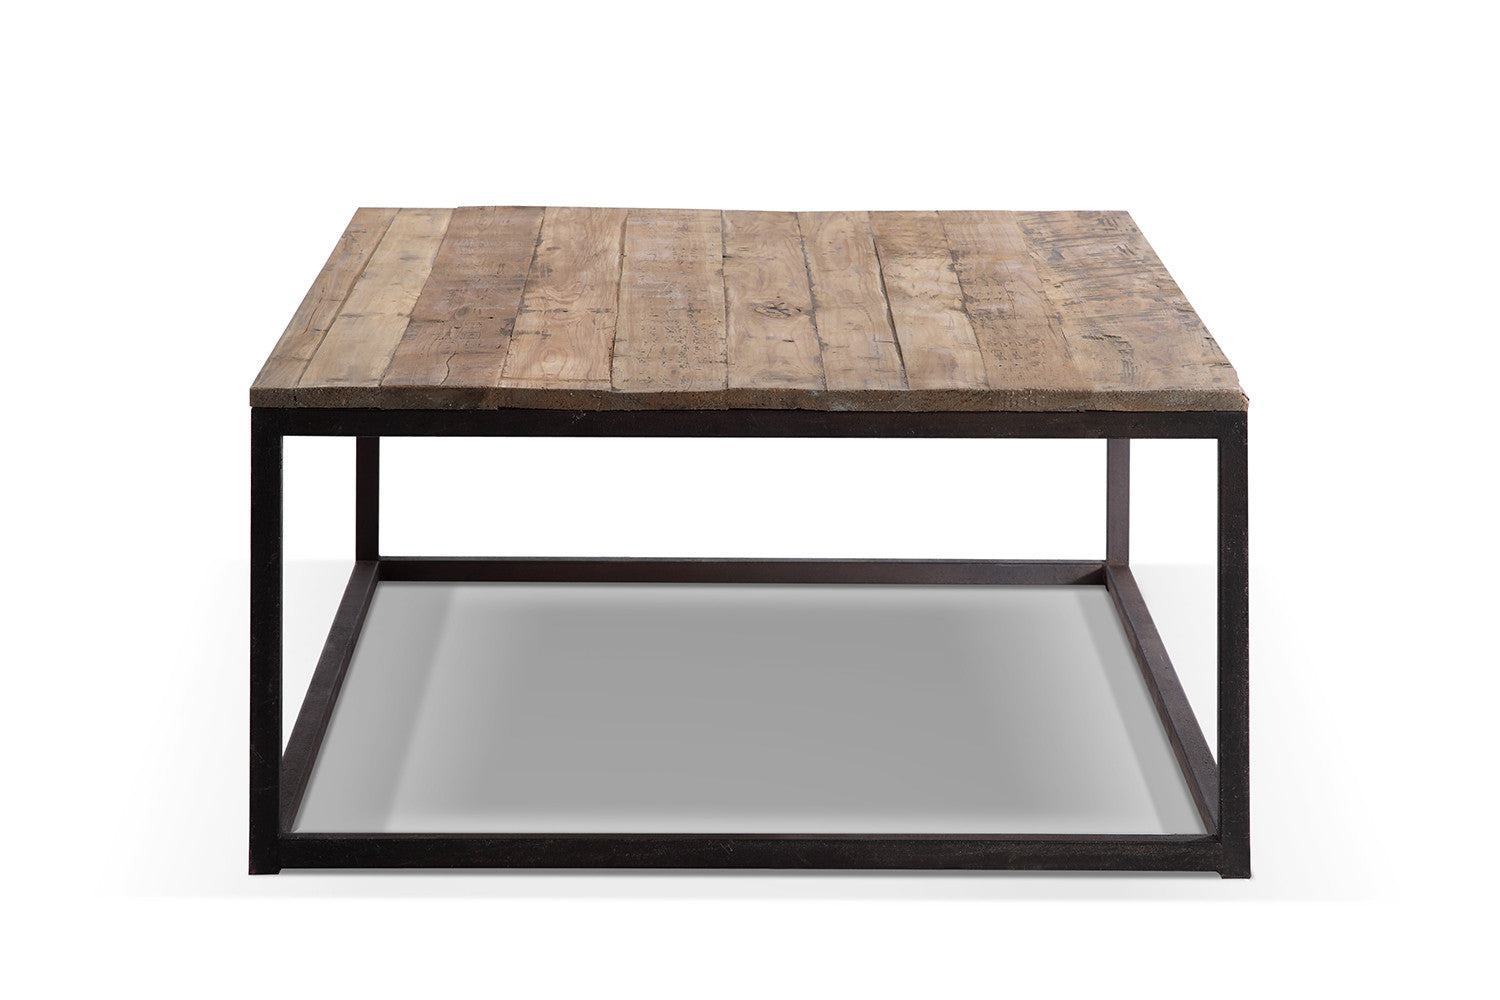 Table basse industrielle en m tal et bois tb02 rose - Table basse industrielle metal et bois ...